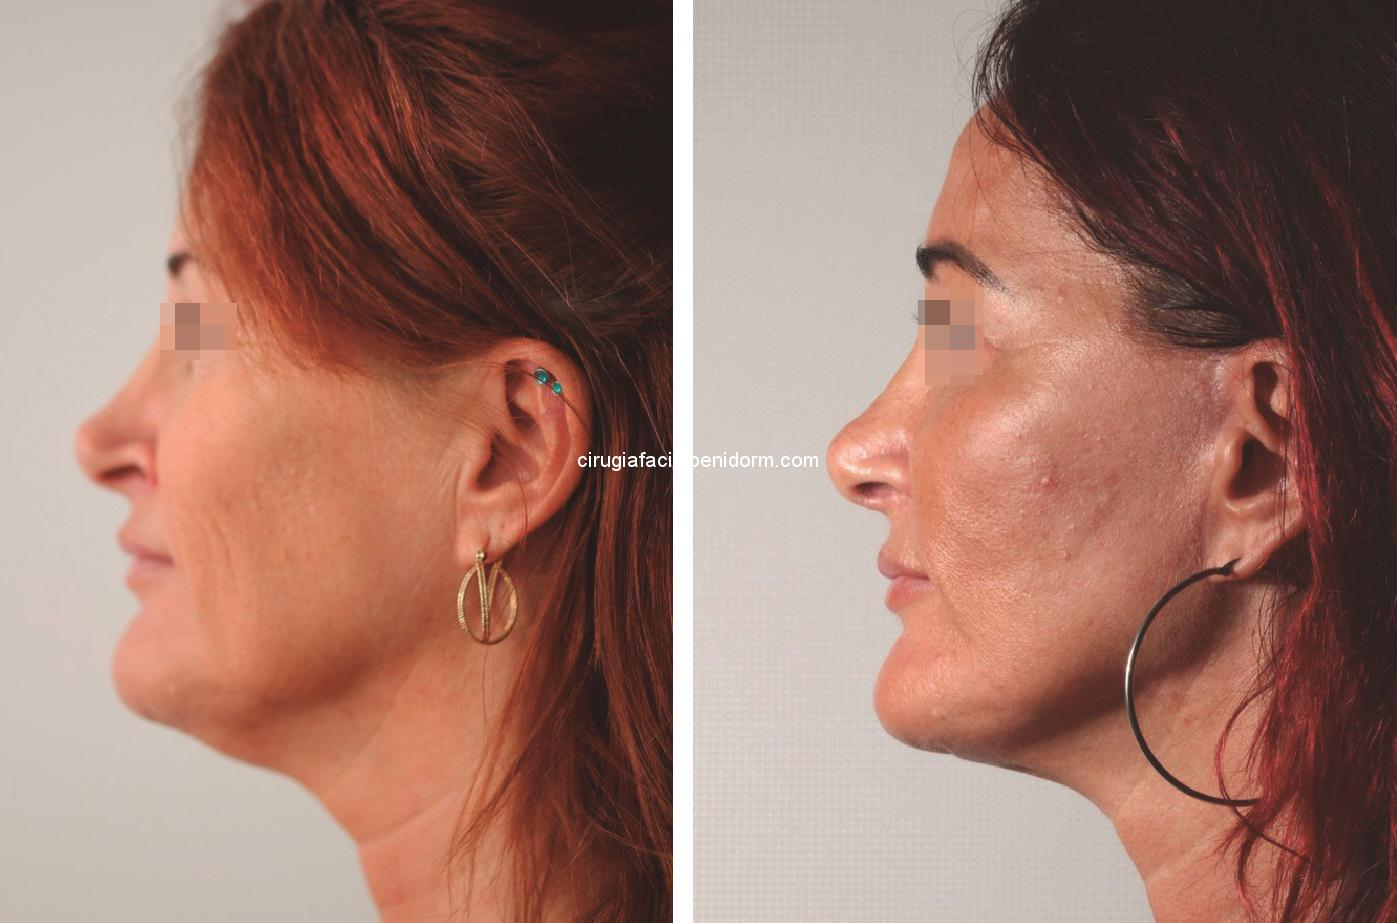 Lifting facial antes y después. Facial lifting before and after